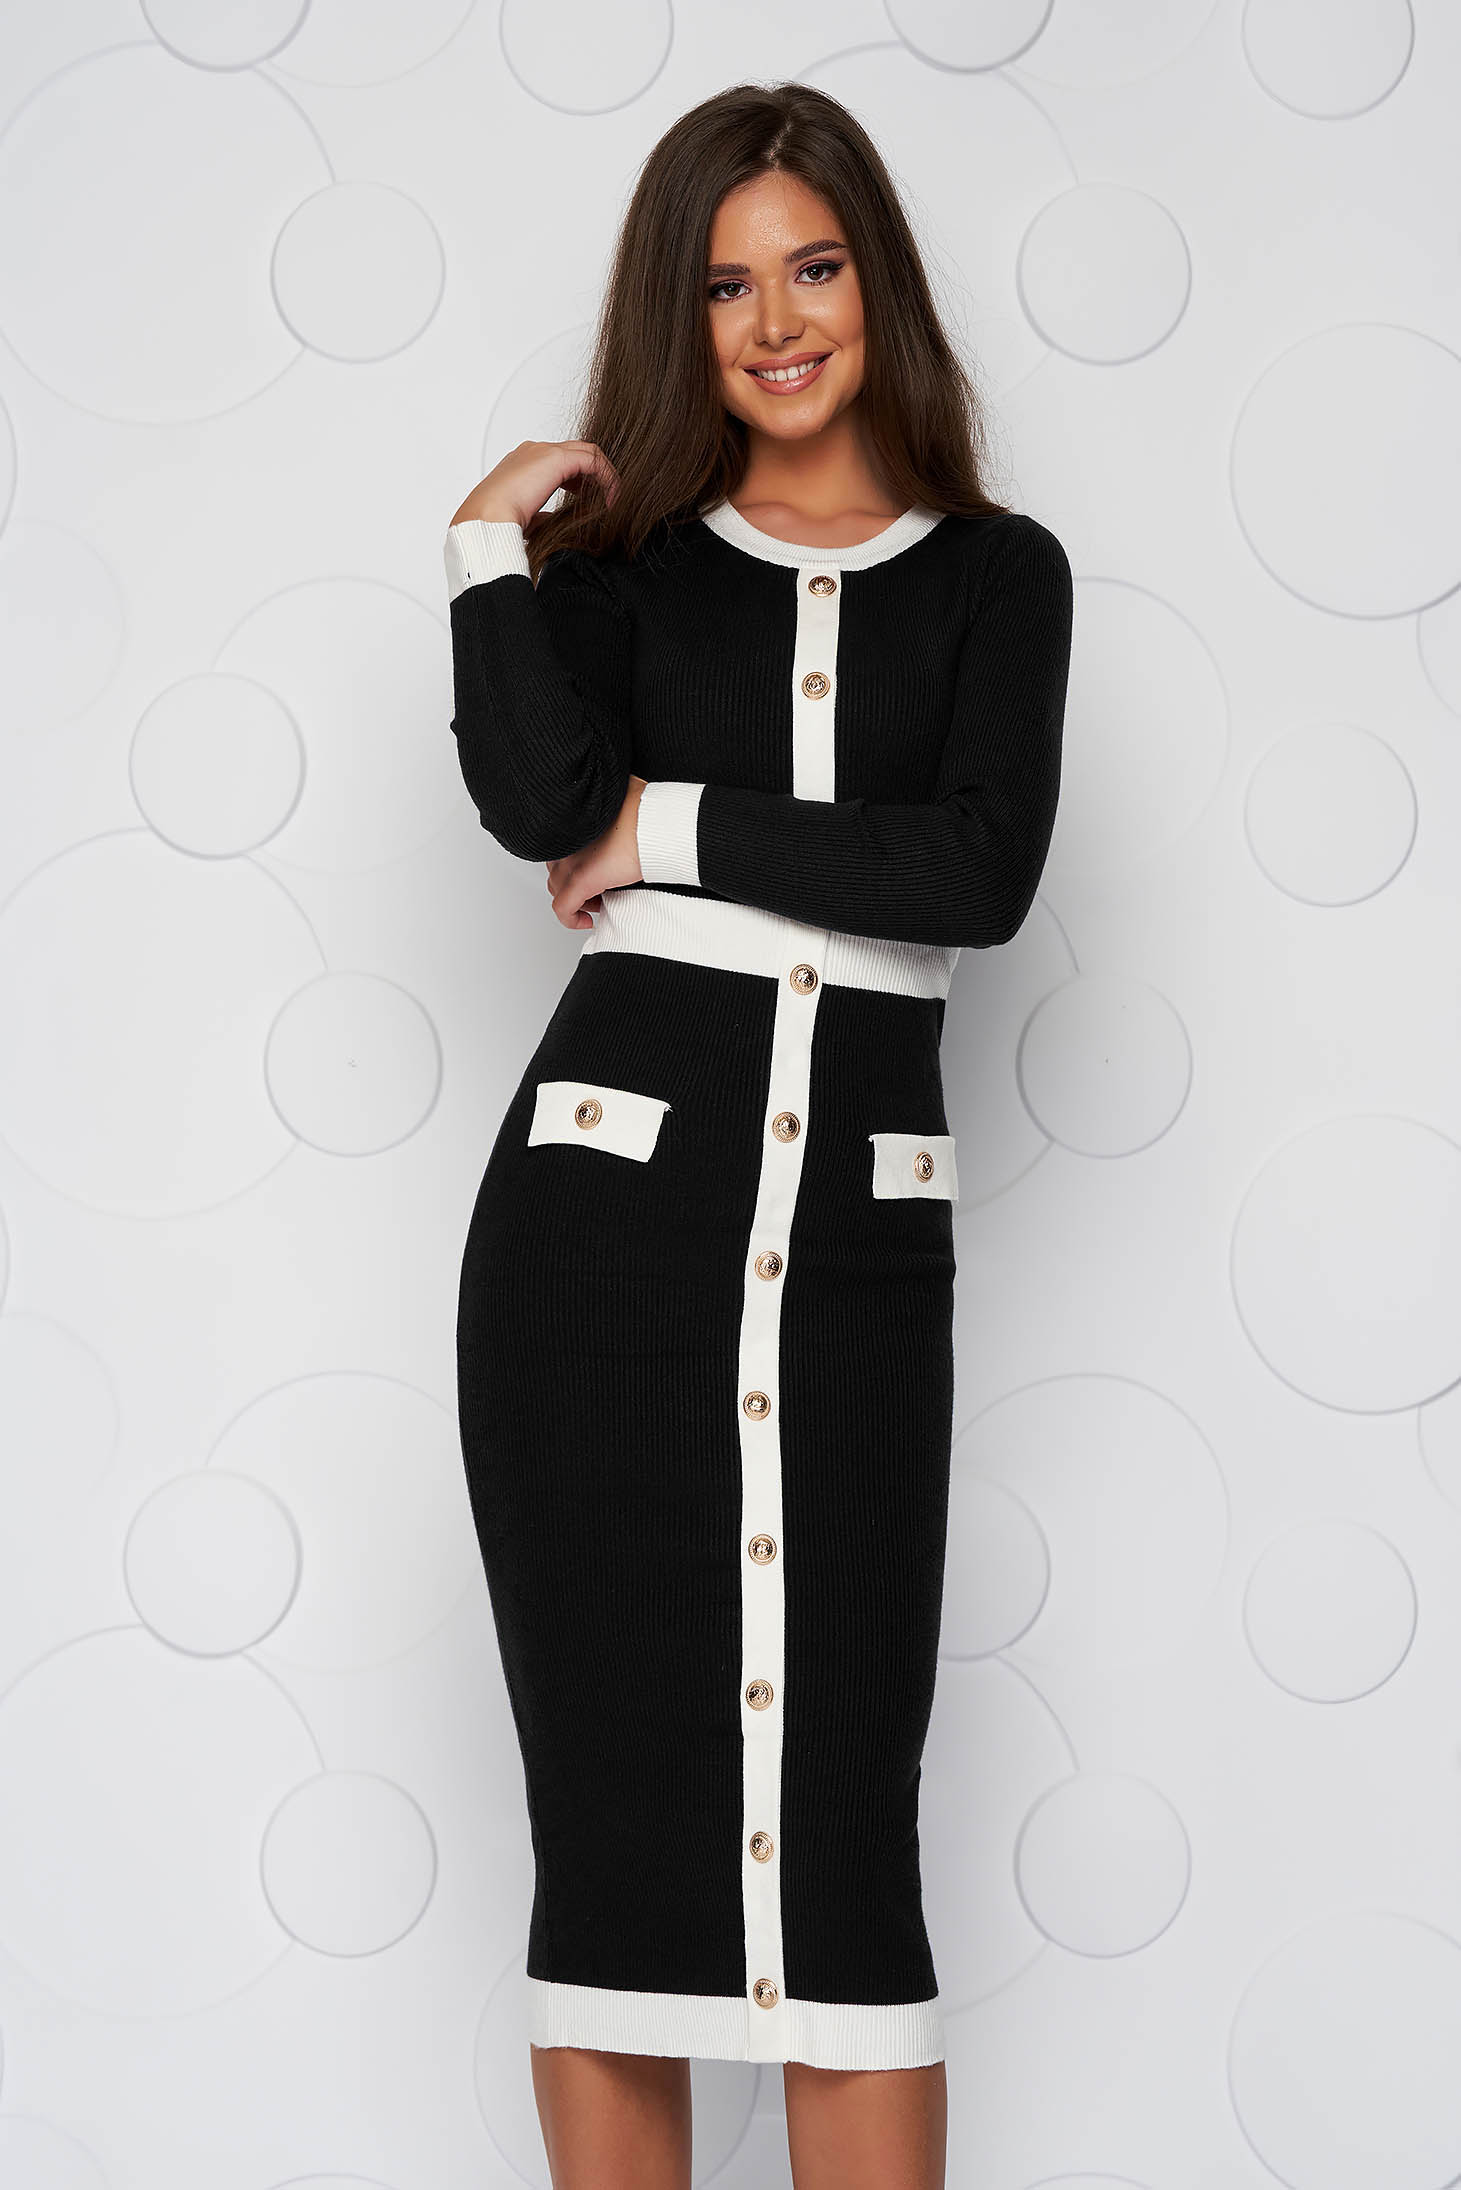 Black dress with faux pockets pencil with button accessories knitted fabric midi